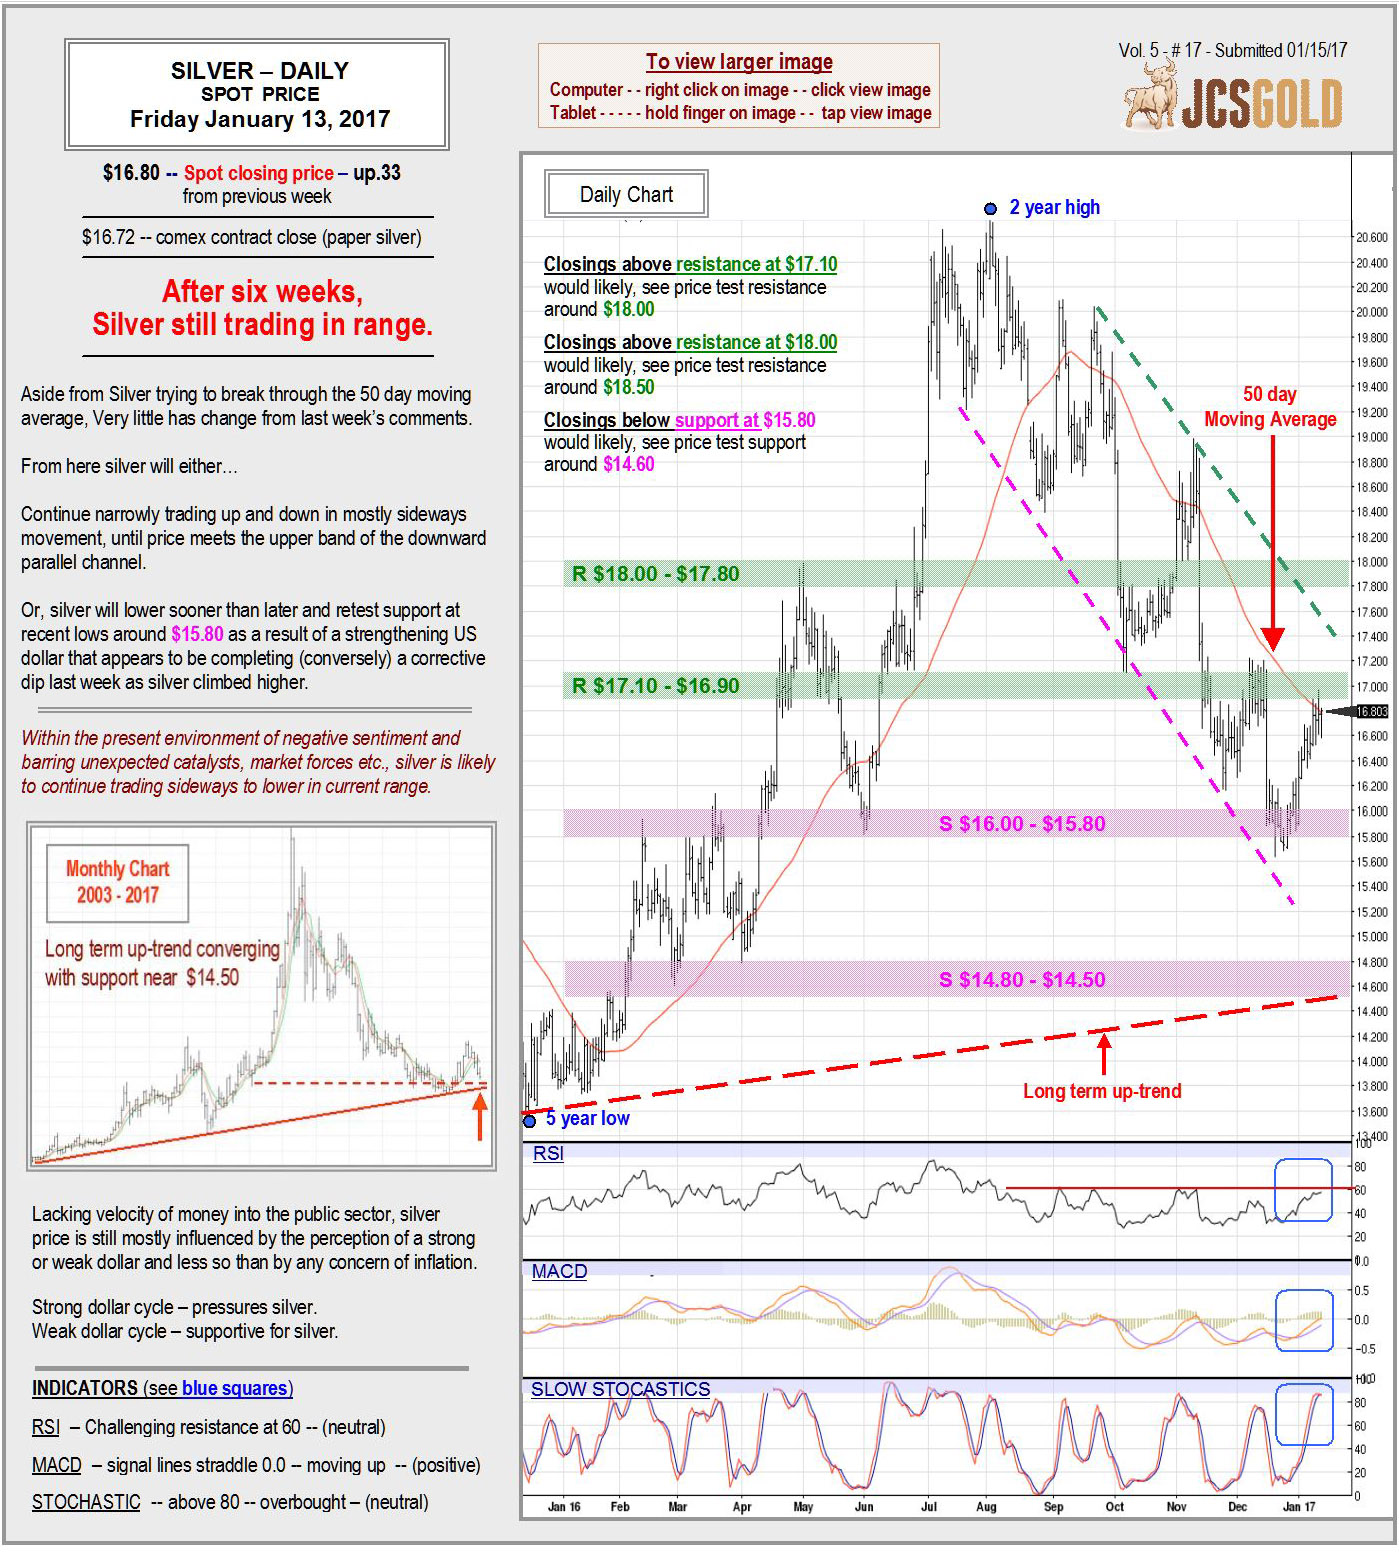 Silver Jan 13, 2017 chart & commentary